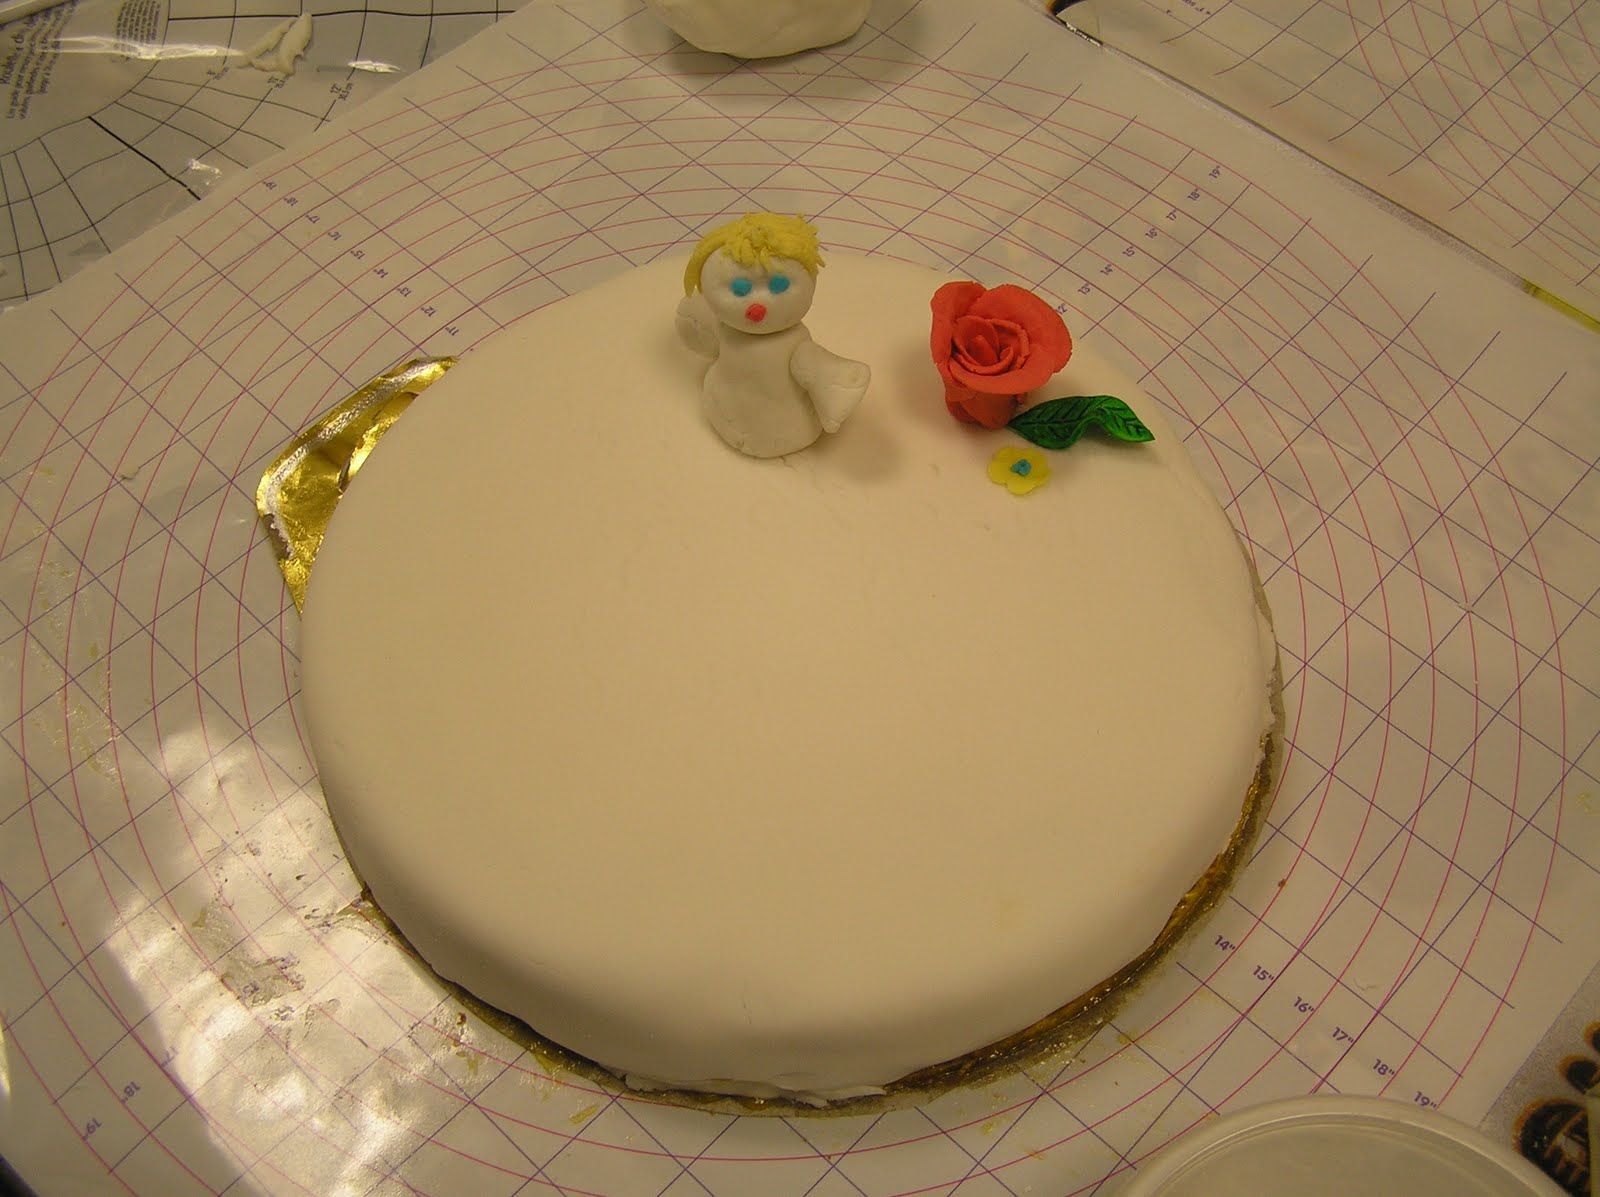 Cake Decorating Course Garstang : The Wandering Pit: Fondant Cake Decorating Course